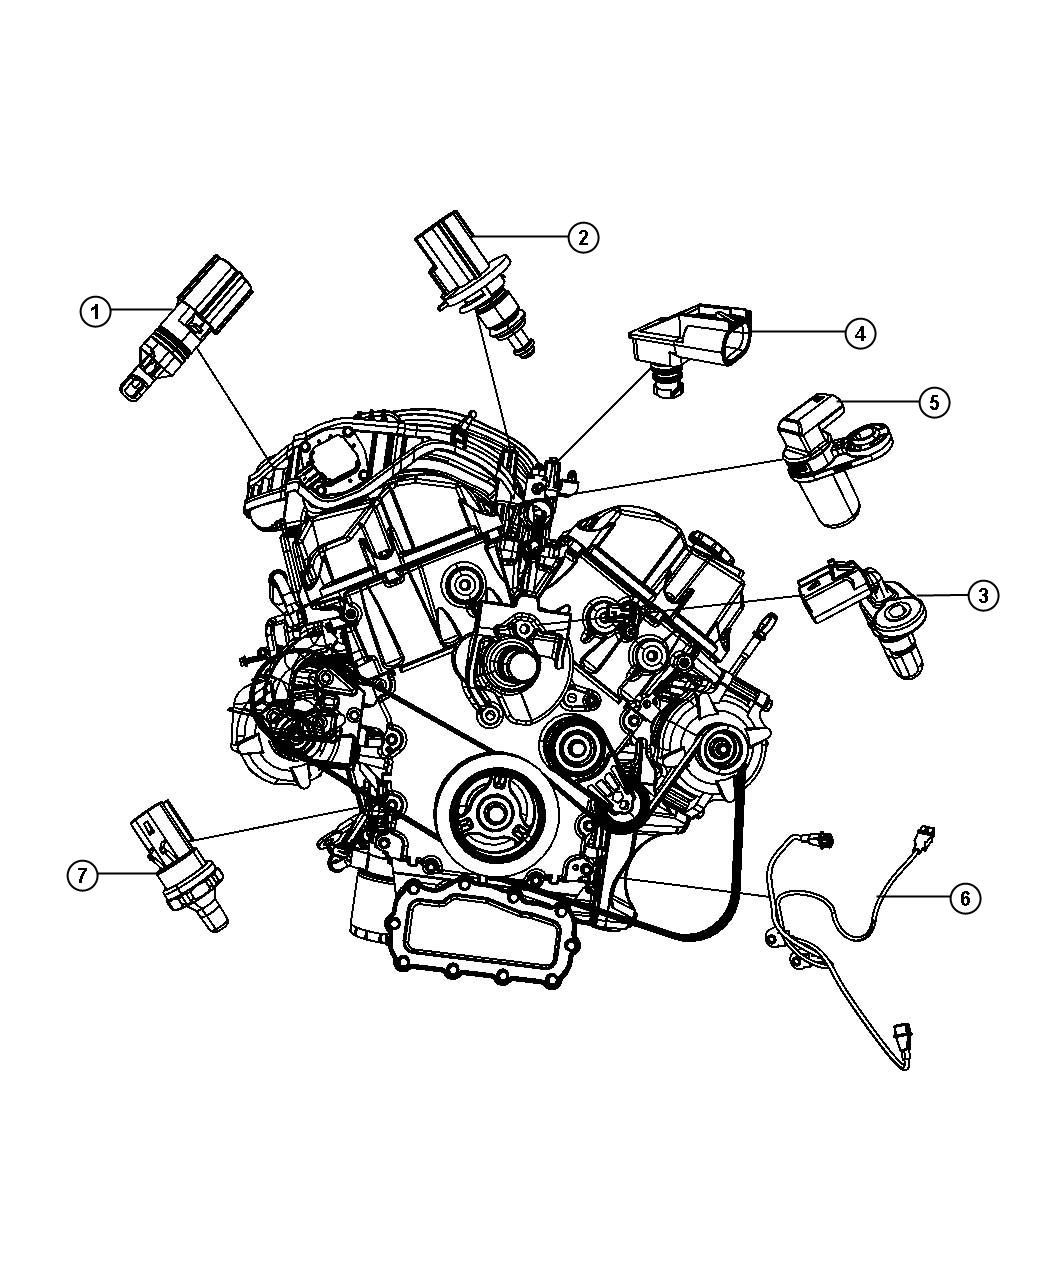 Chrysler Sebring Sensor Crankshaft Position Engine